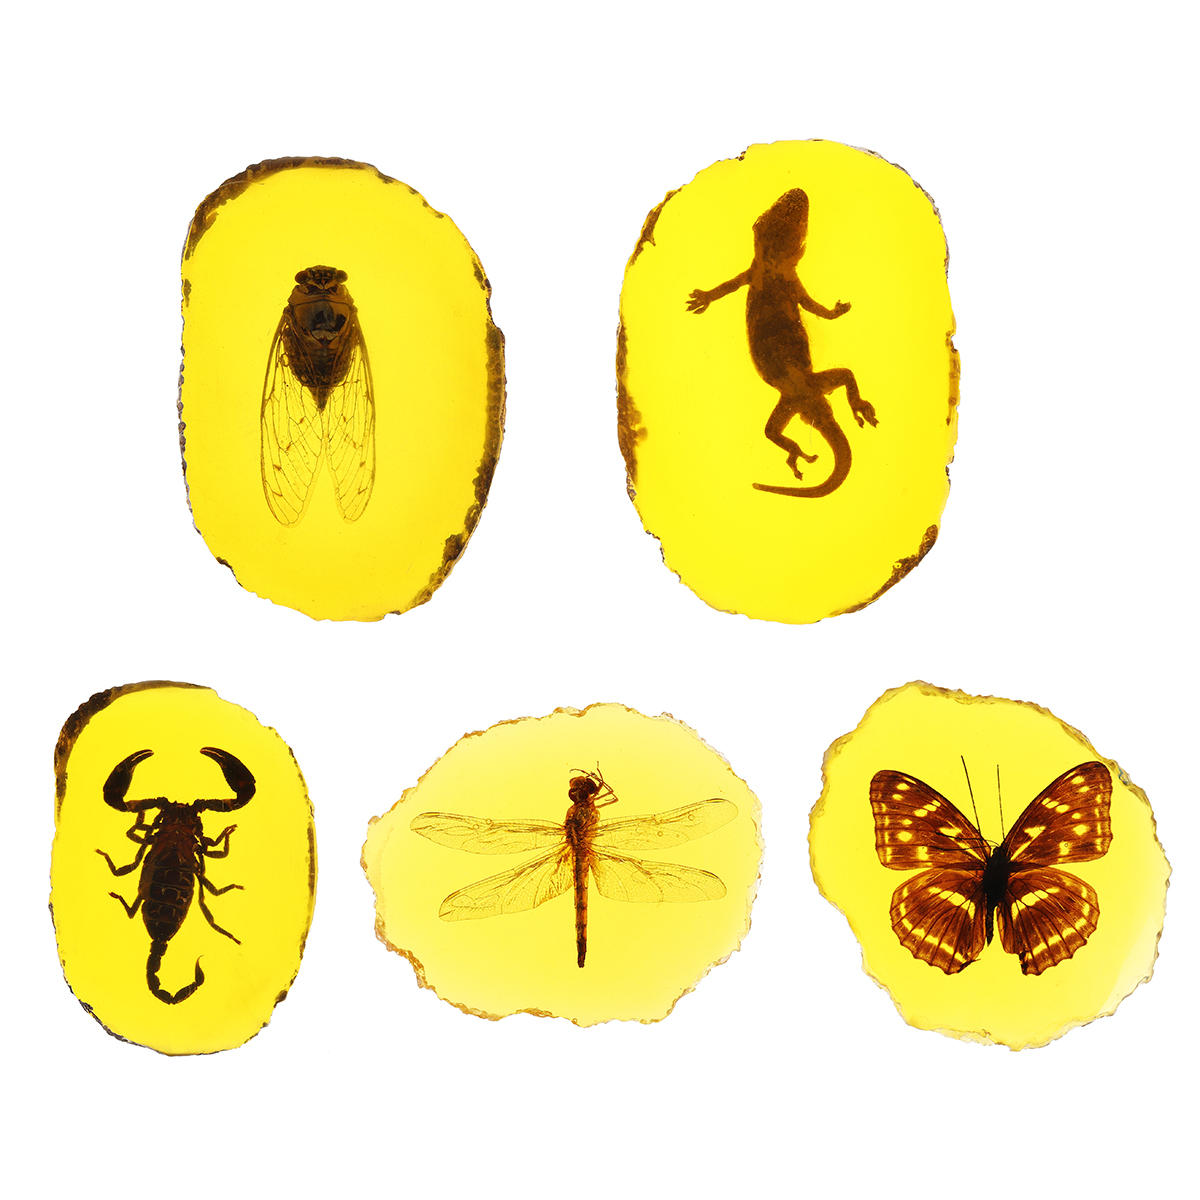 Amber Fossil Insects Dragonfly Manual Polishing Insect Specimen Pendant Craft Decorations